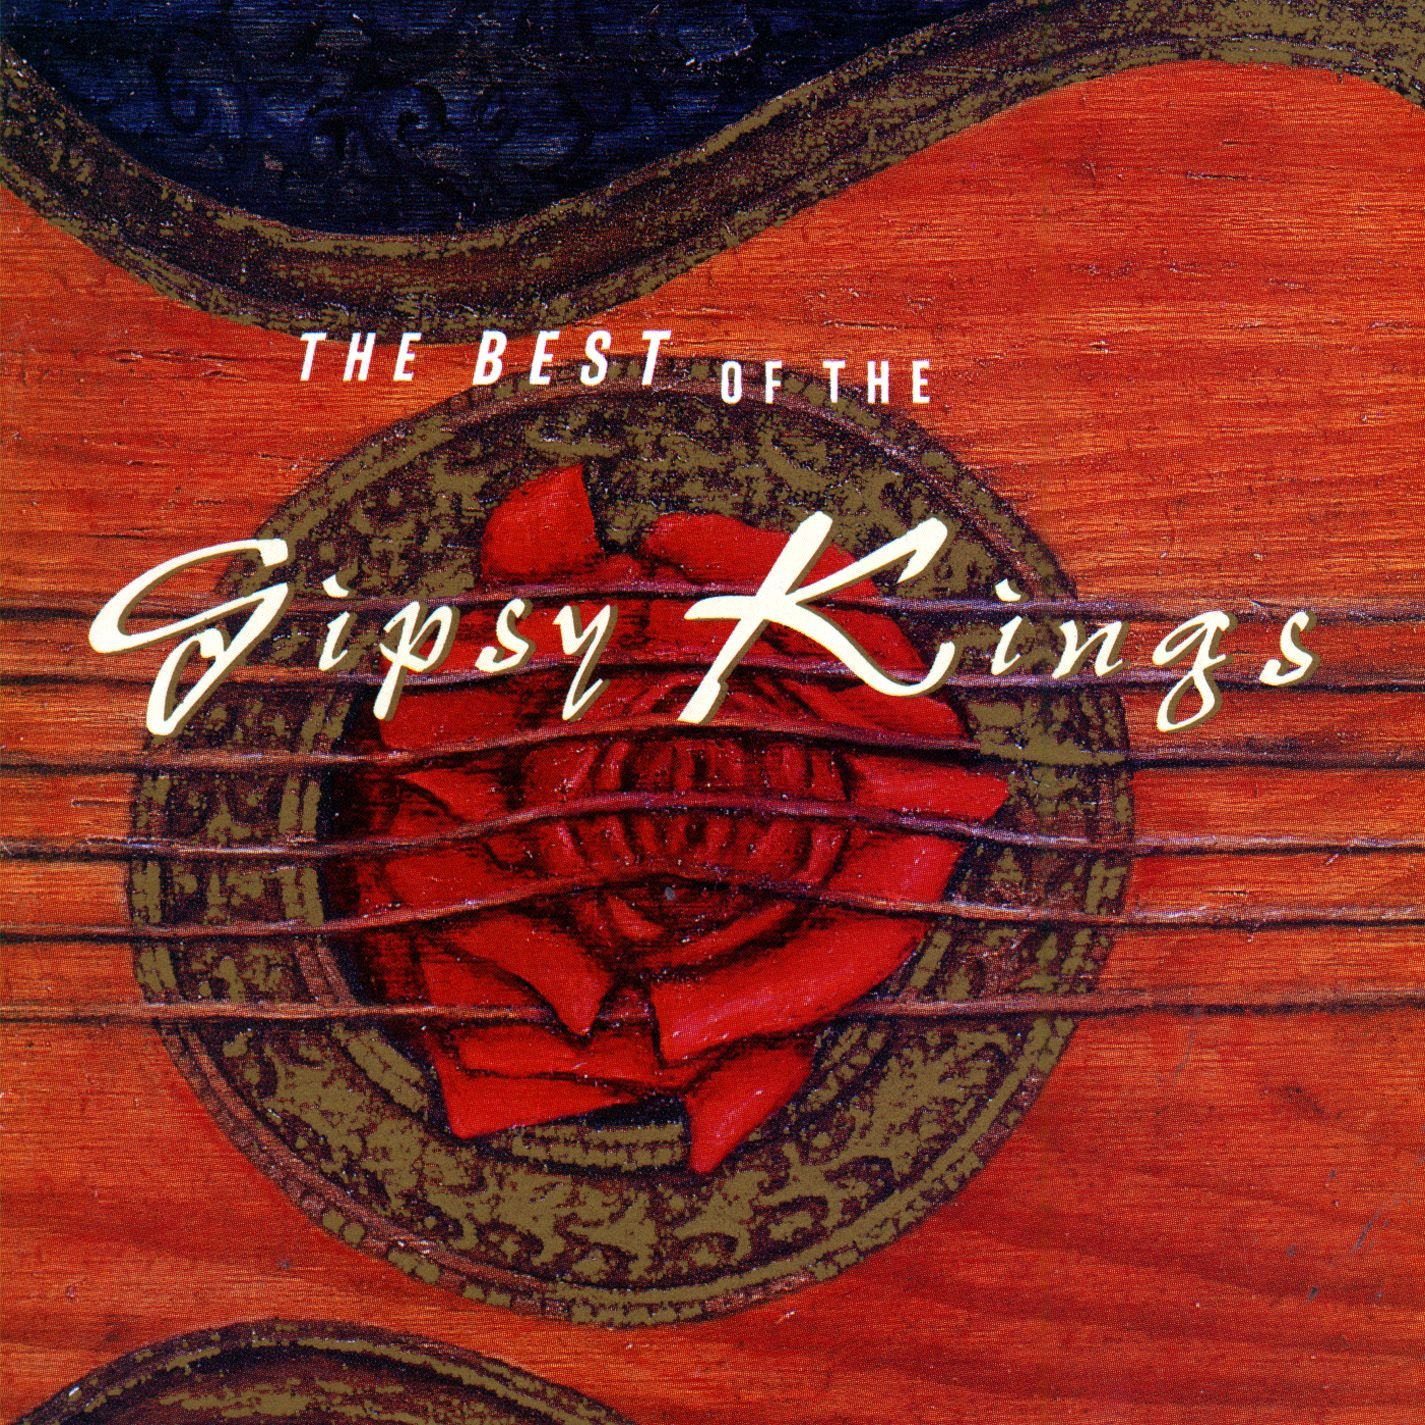 The Best of the Gipsy Kings by Nonesuch